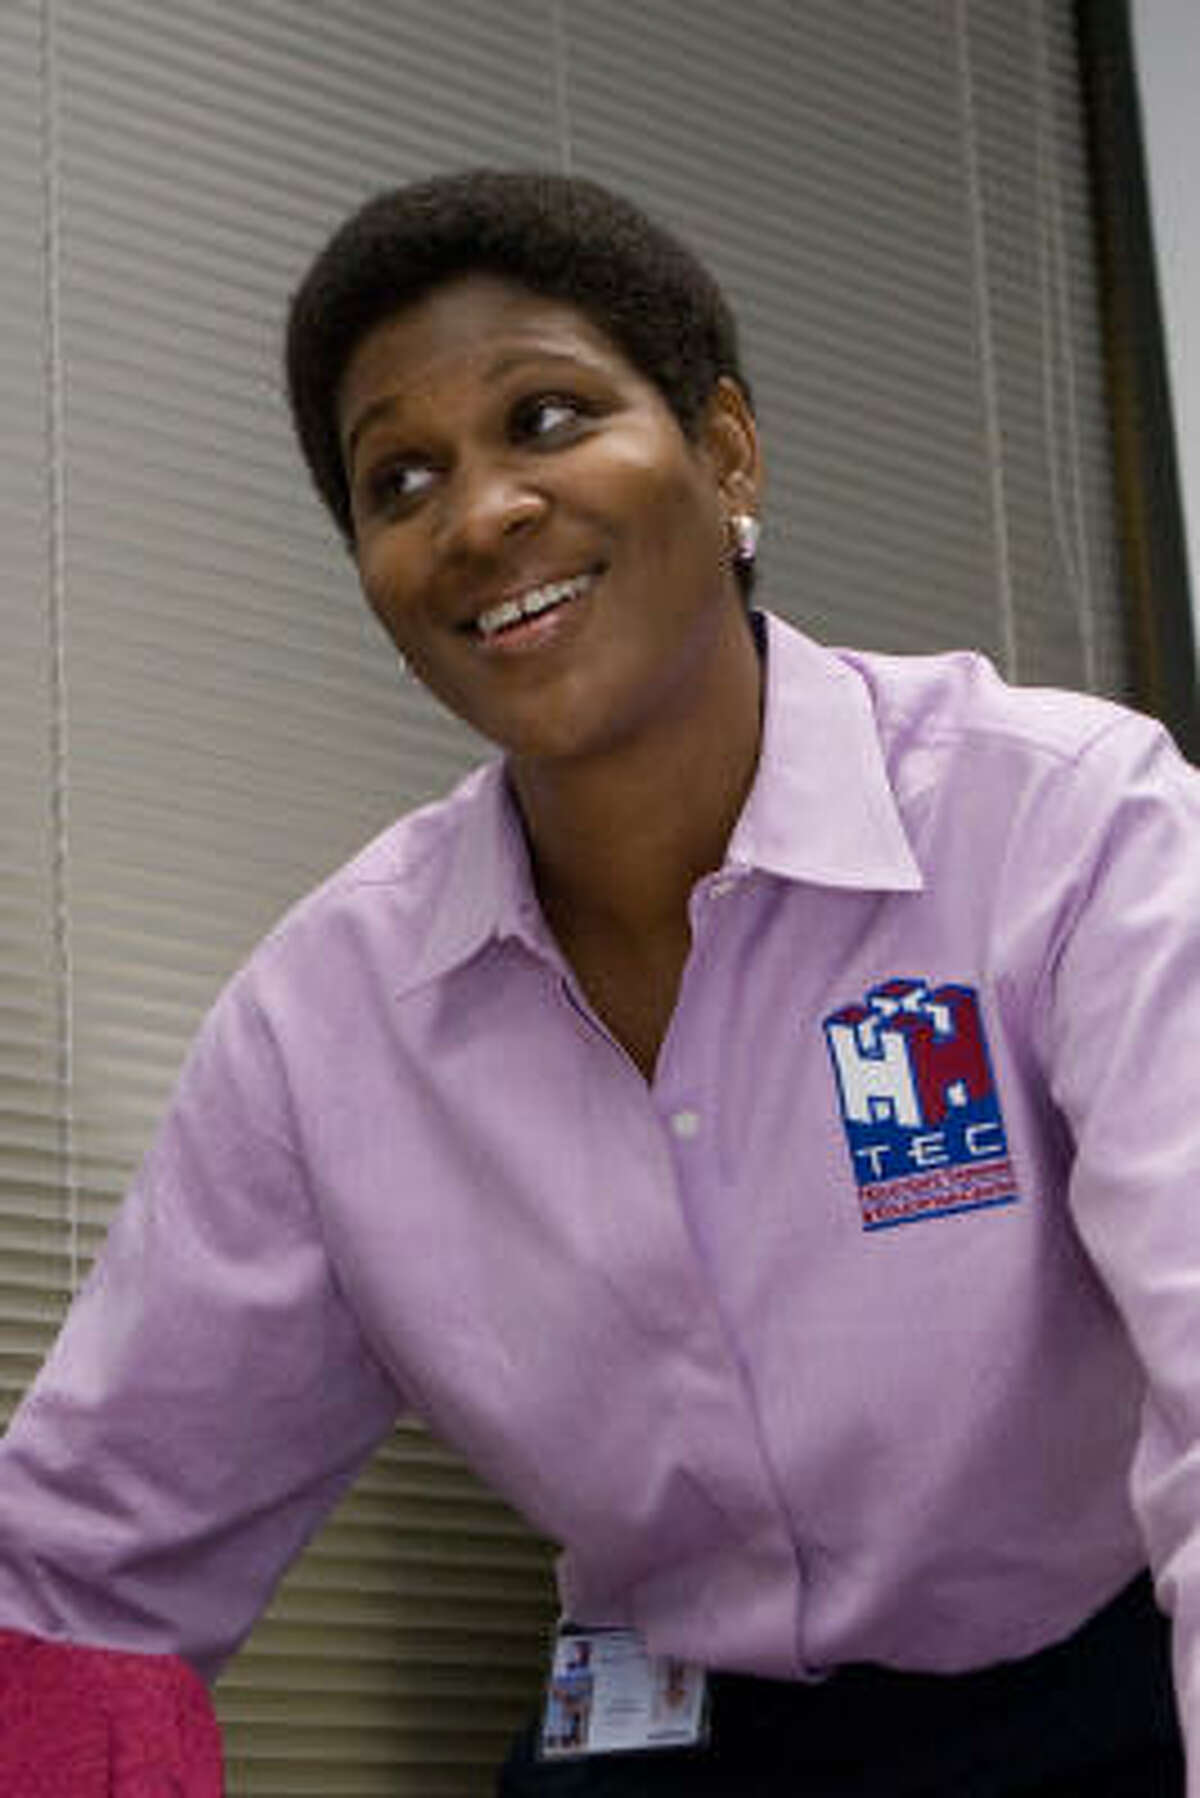 Stephanie Boutté-Phillips is founder and head of Houston's Training and Education Center. She recently was nominated for the 2007 African American Business Achievement Pinnacle Award.